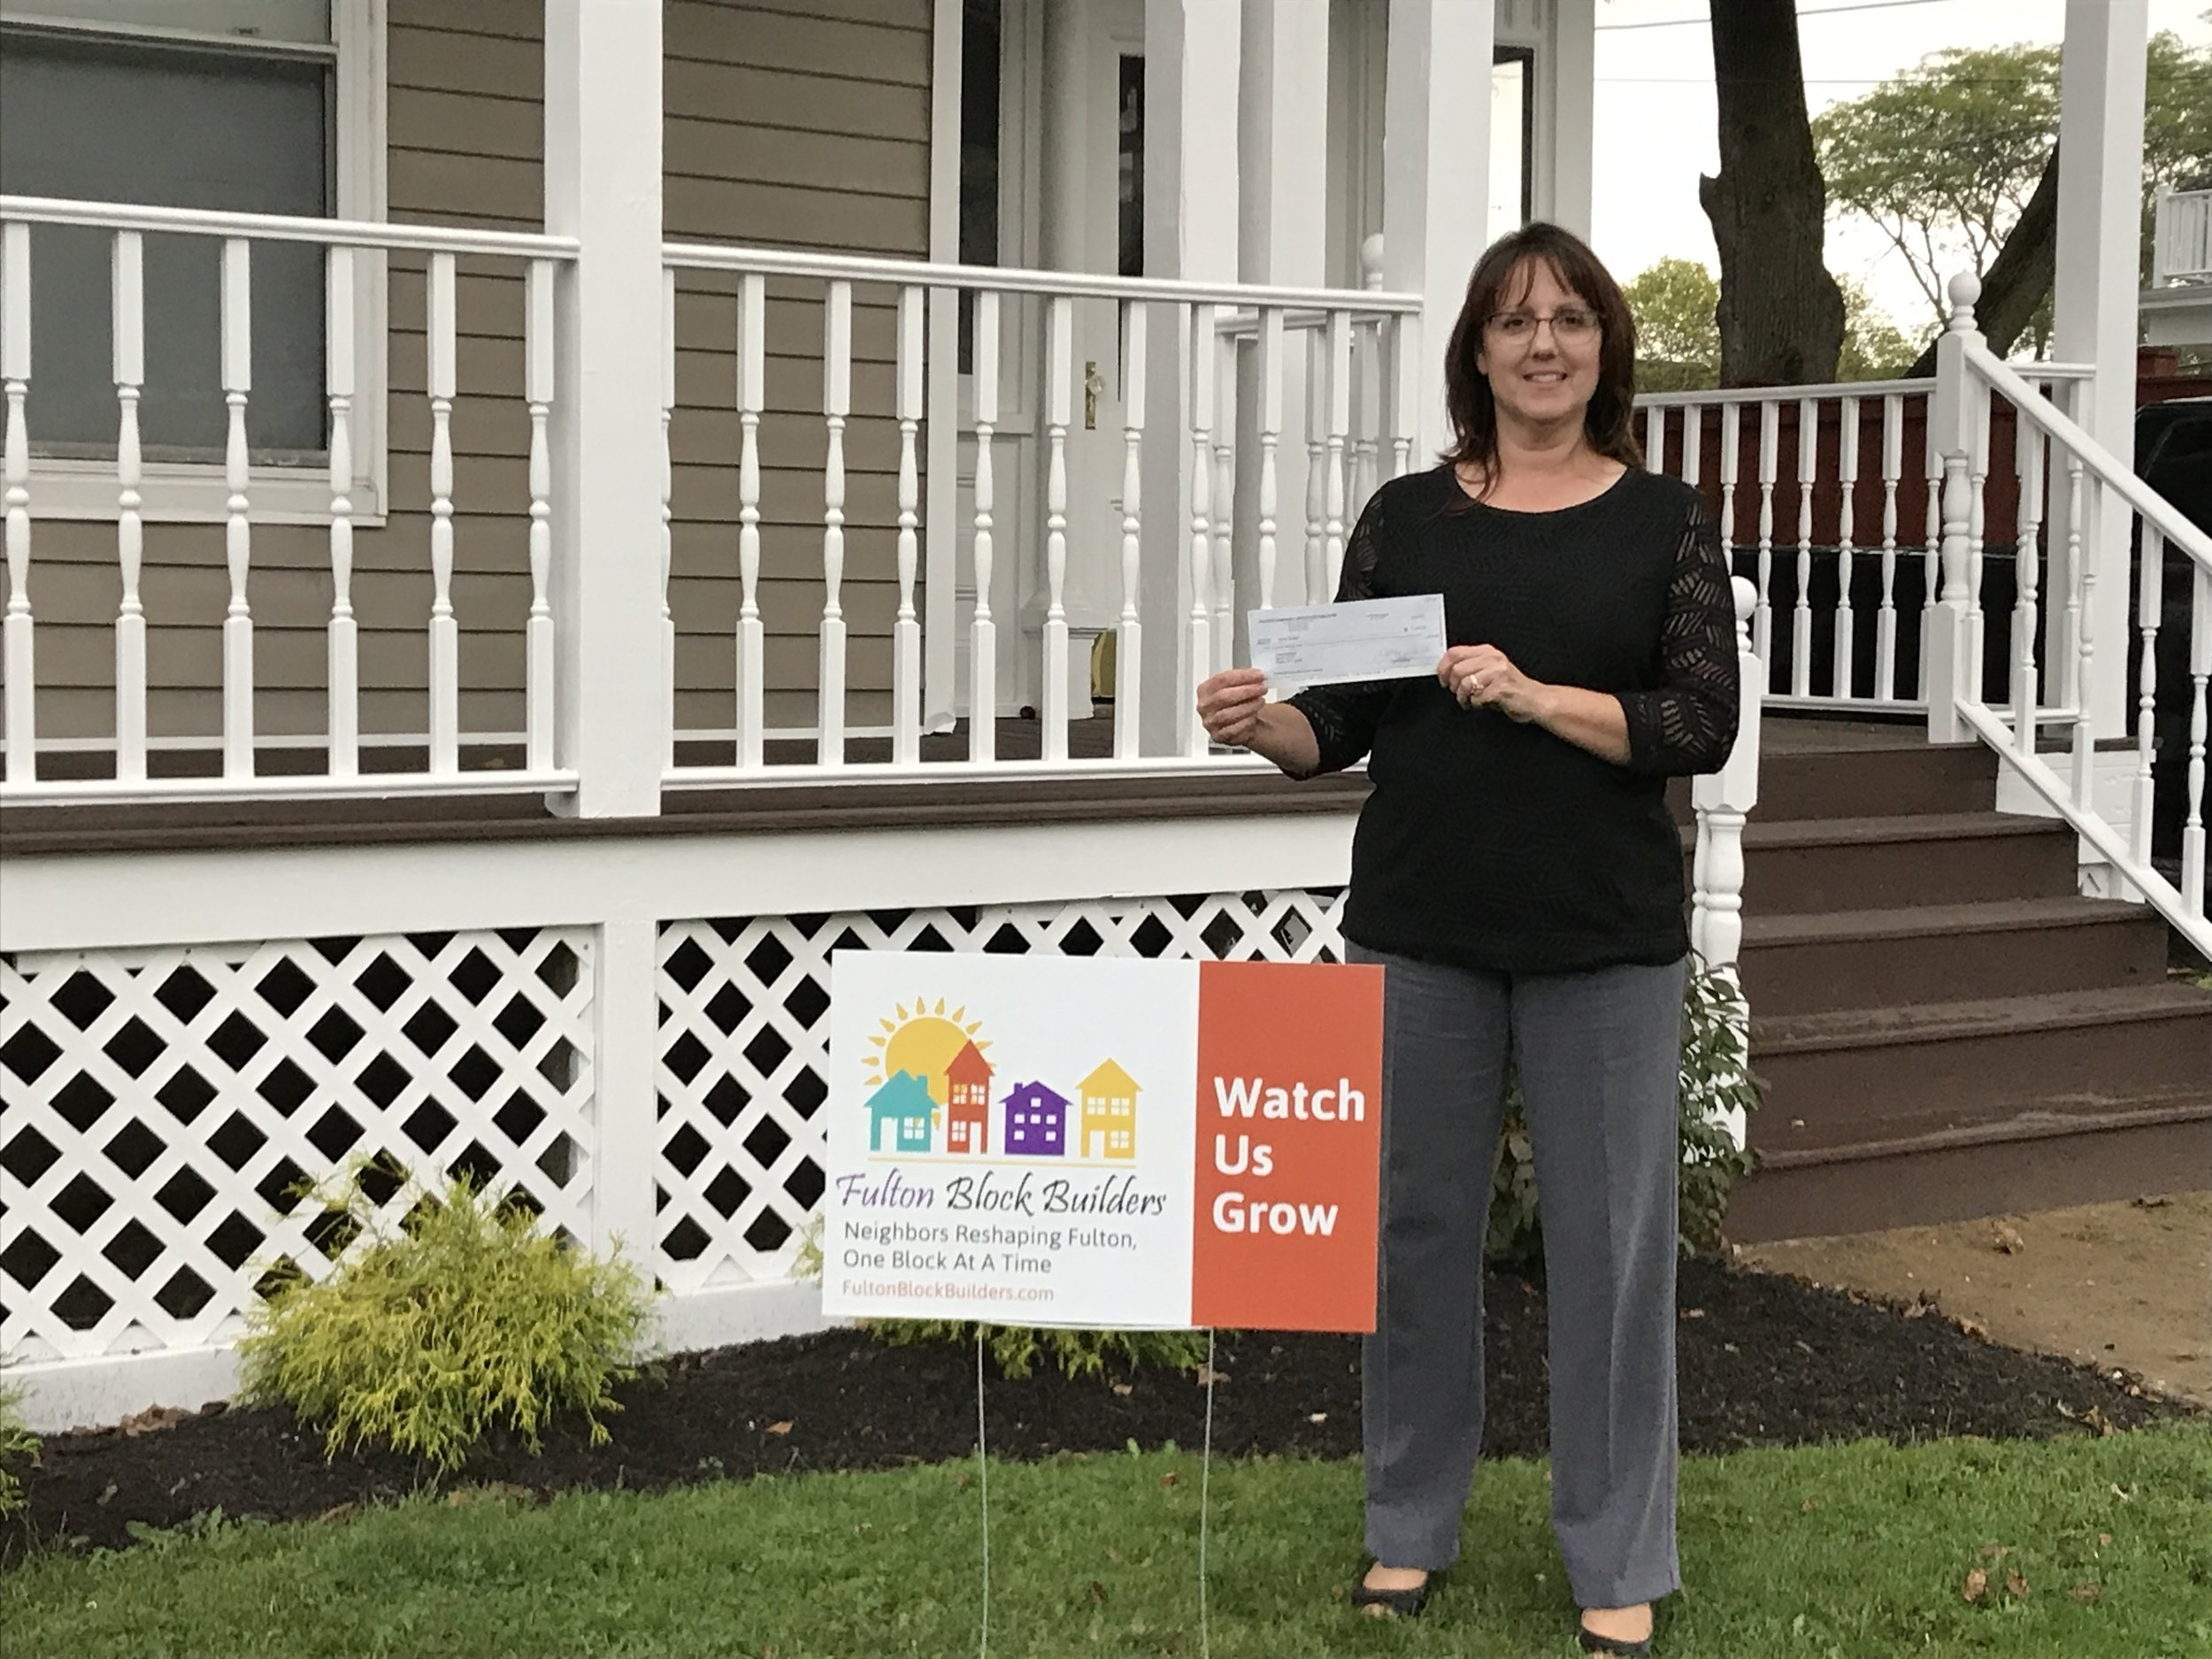 Cheryl Baldwin is just one of several landlords participating in the 2017 Fulton Block Builder Challenge